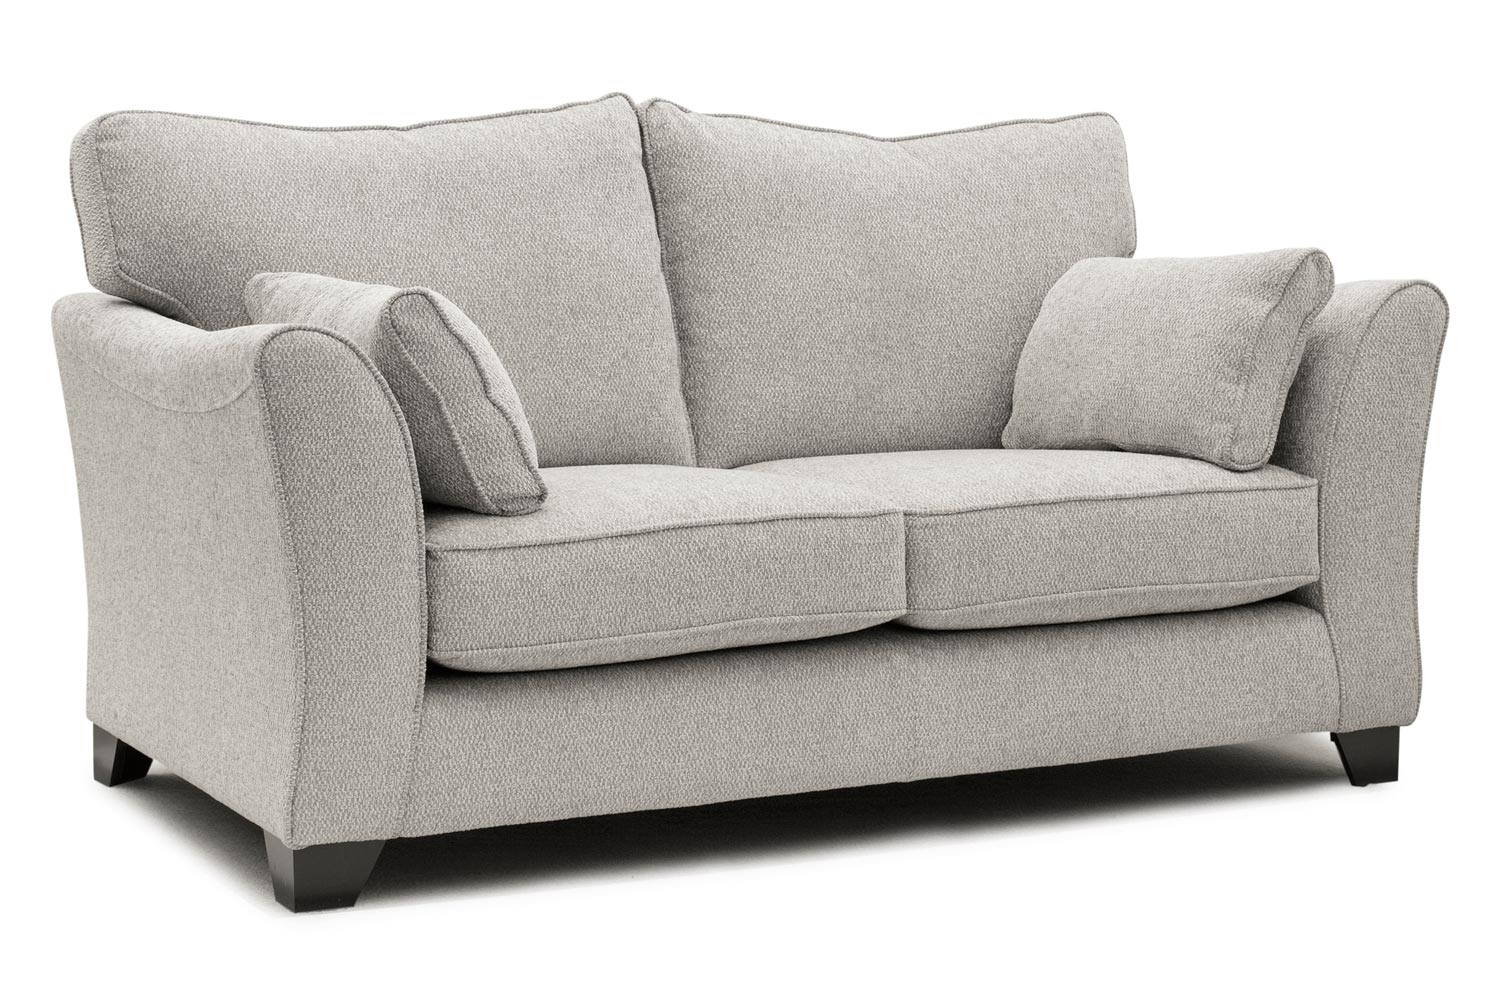 Habitat Rupert Sofa Review 2 Seater Sofa Best Interior Furniture